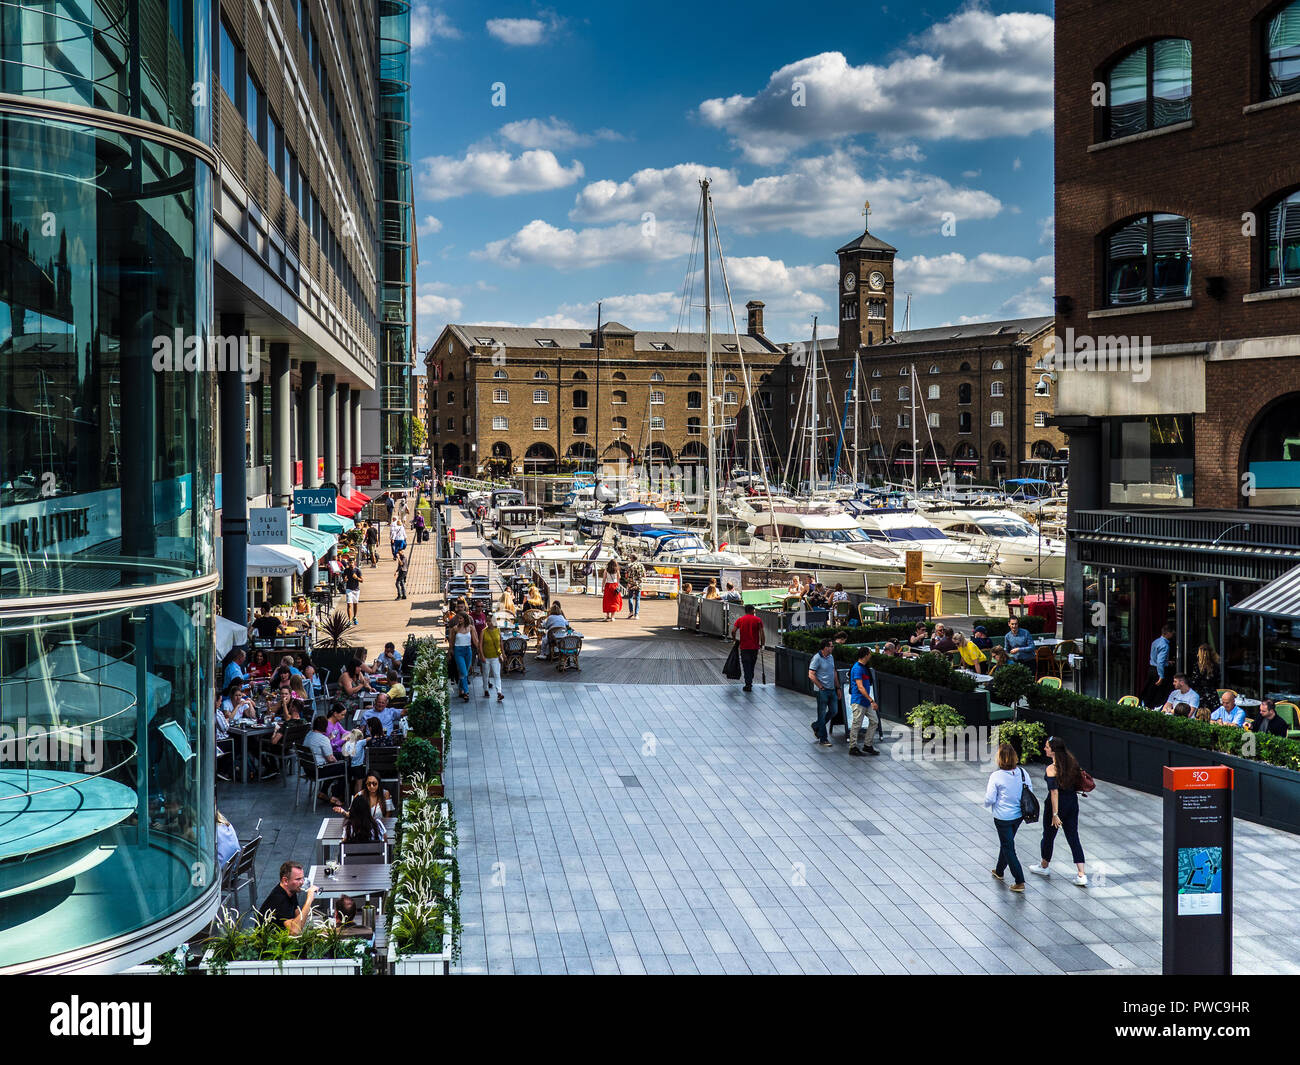 St. Katharine Docks Marina, an historic dock near Tower bridge and the Tower of London, now converted to a marina with offices, restaurants and bars. - Stock Image